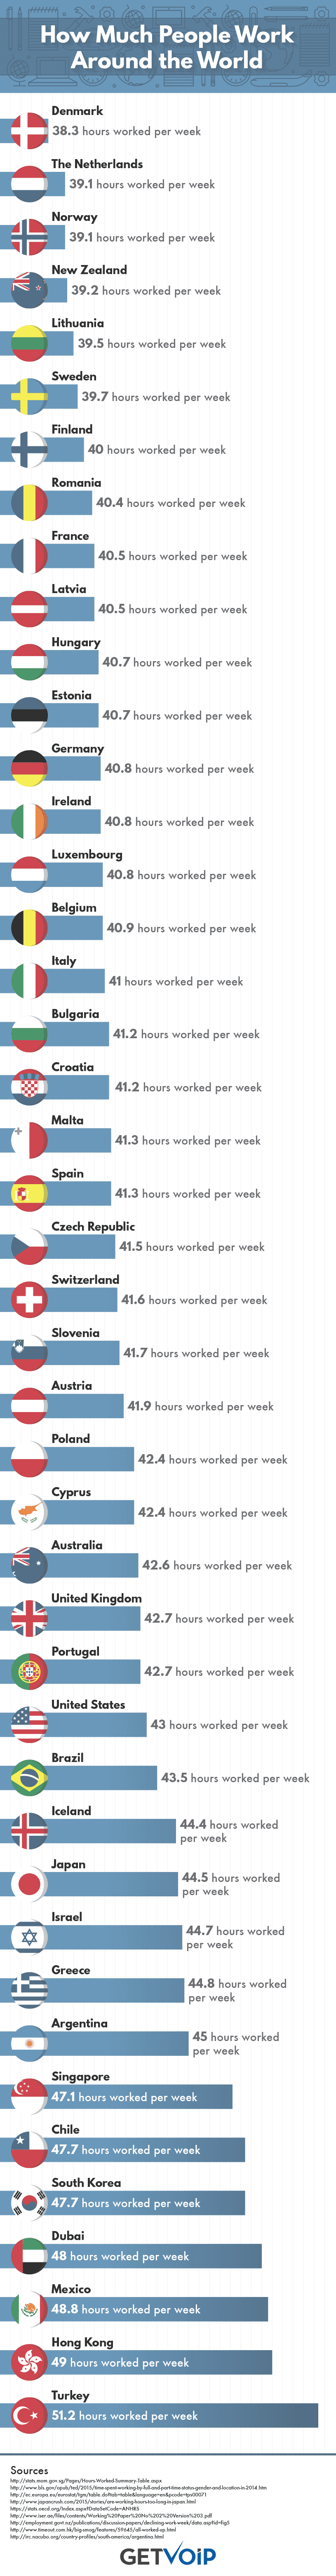 How Much People Work Infographic